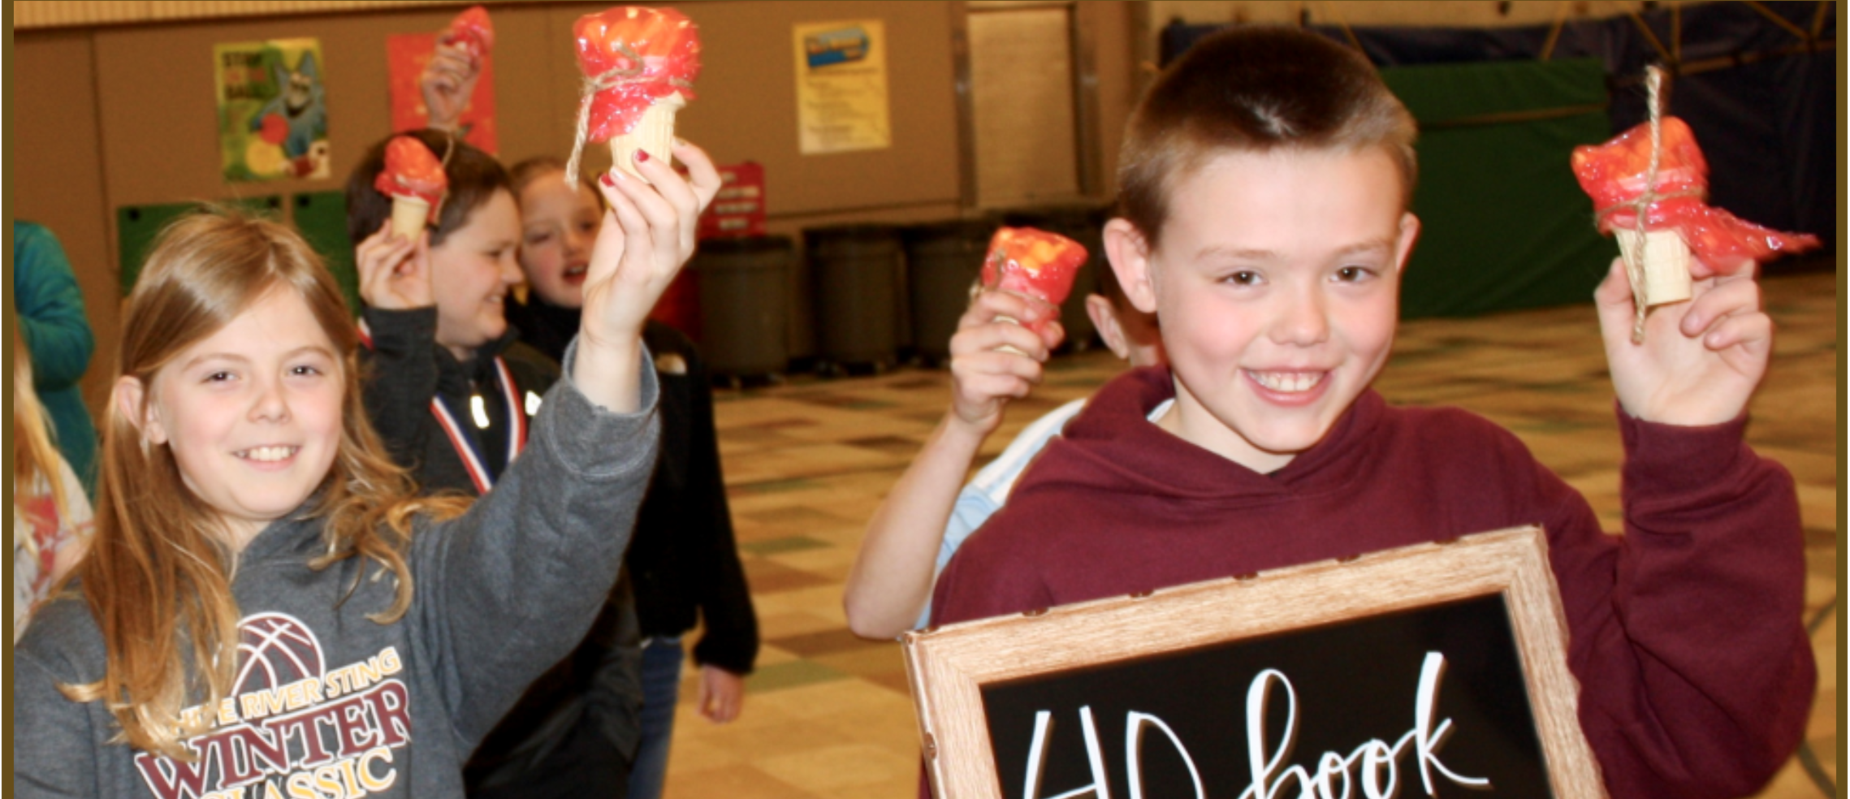 students joining in a fun march holding icecream cone flames